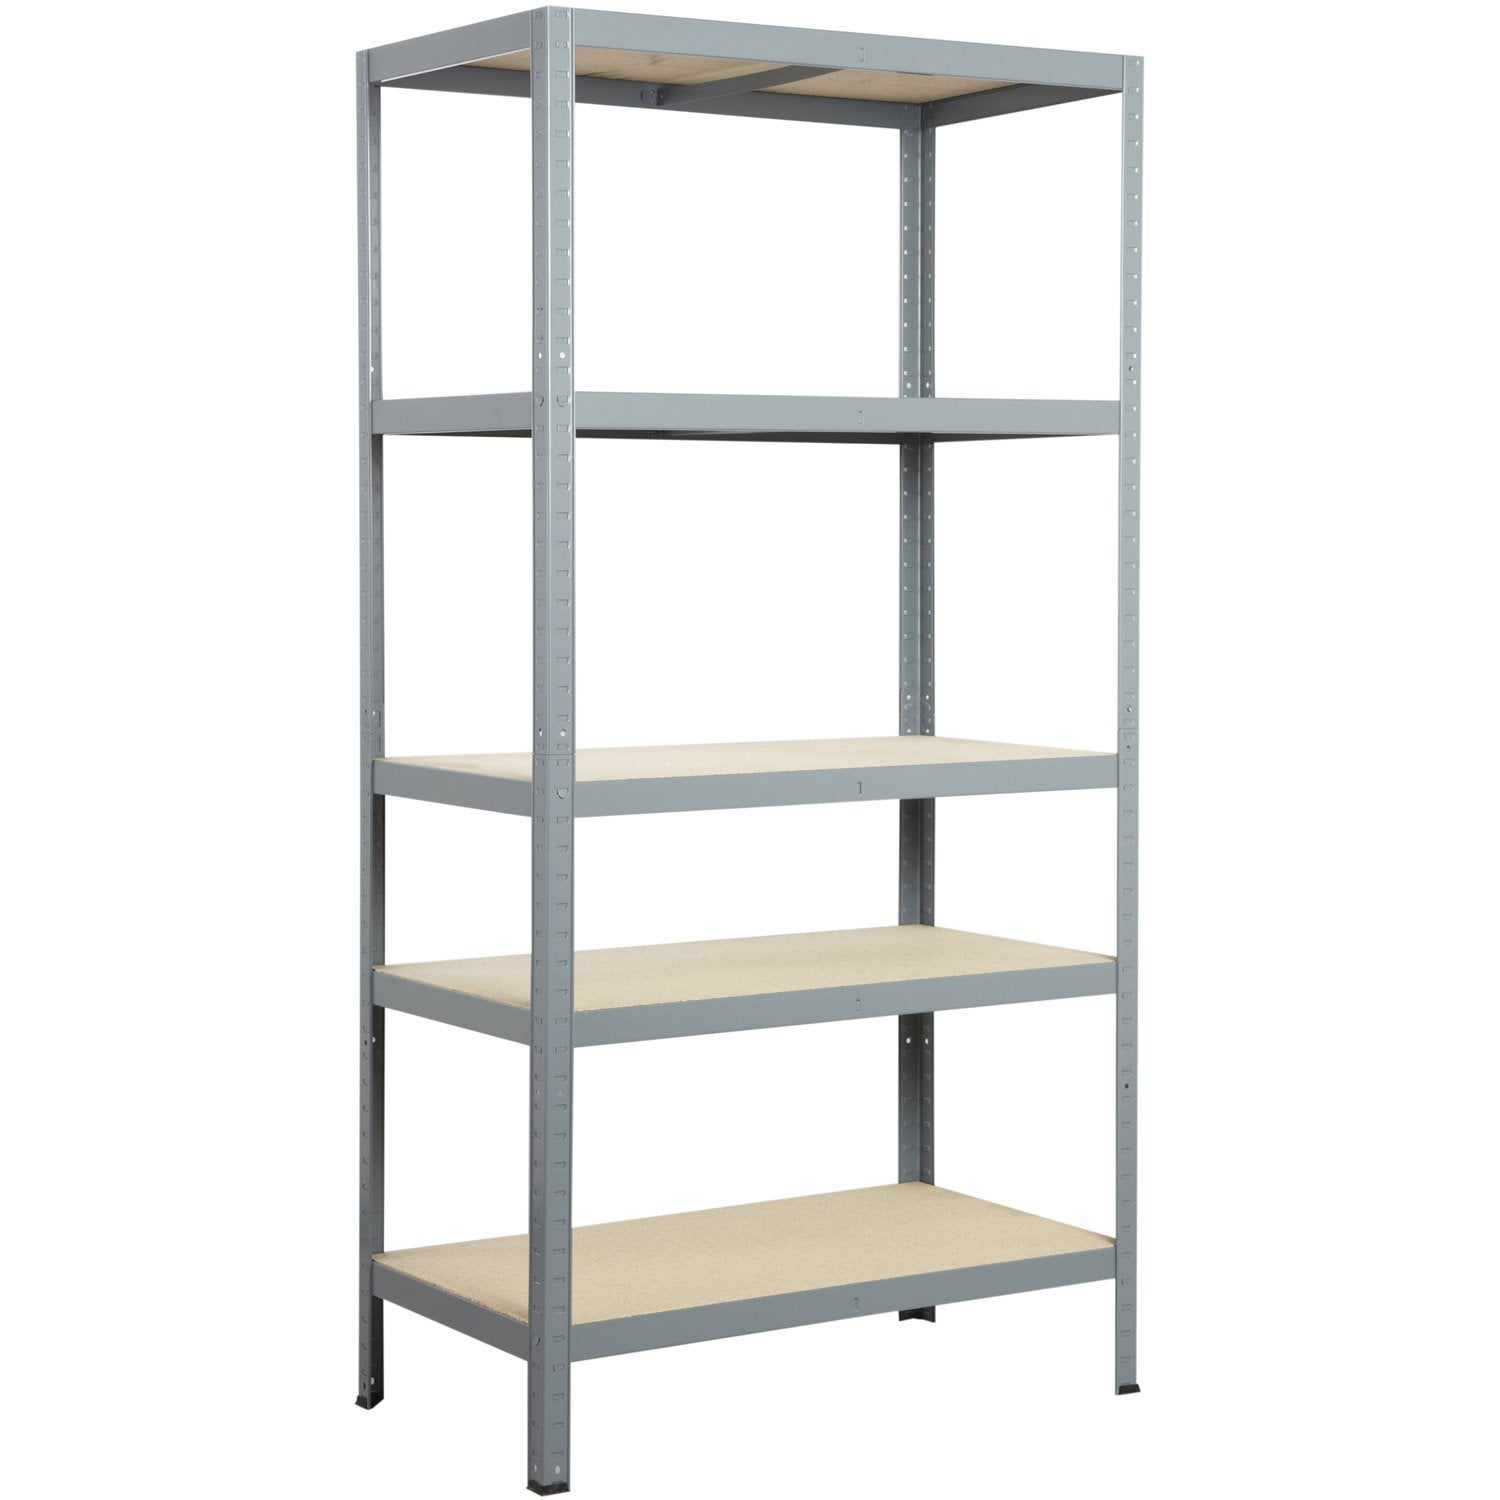 Etag re en acier epoxy gris 5 tablettes avasco strong l90xh176xp50cm leroy - Etagere leroy merlin ...